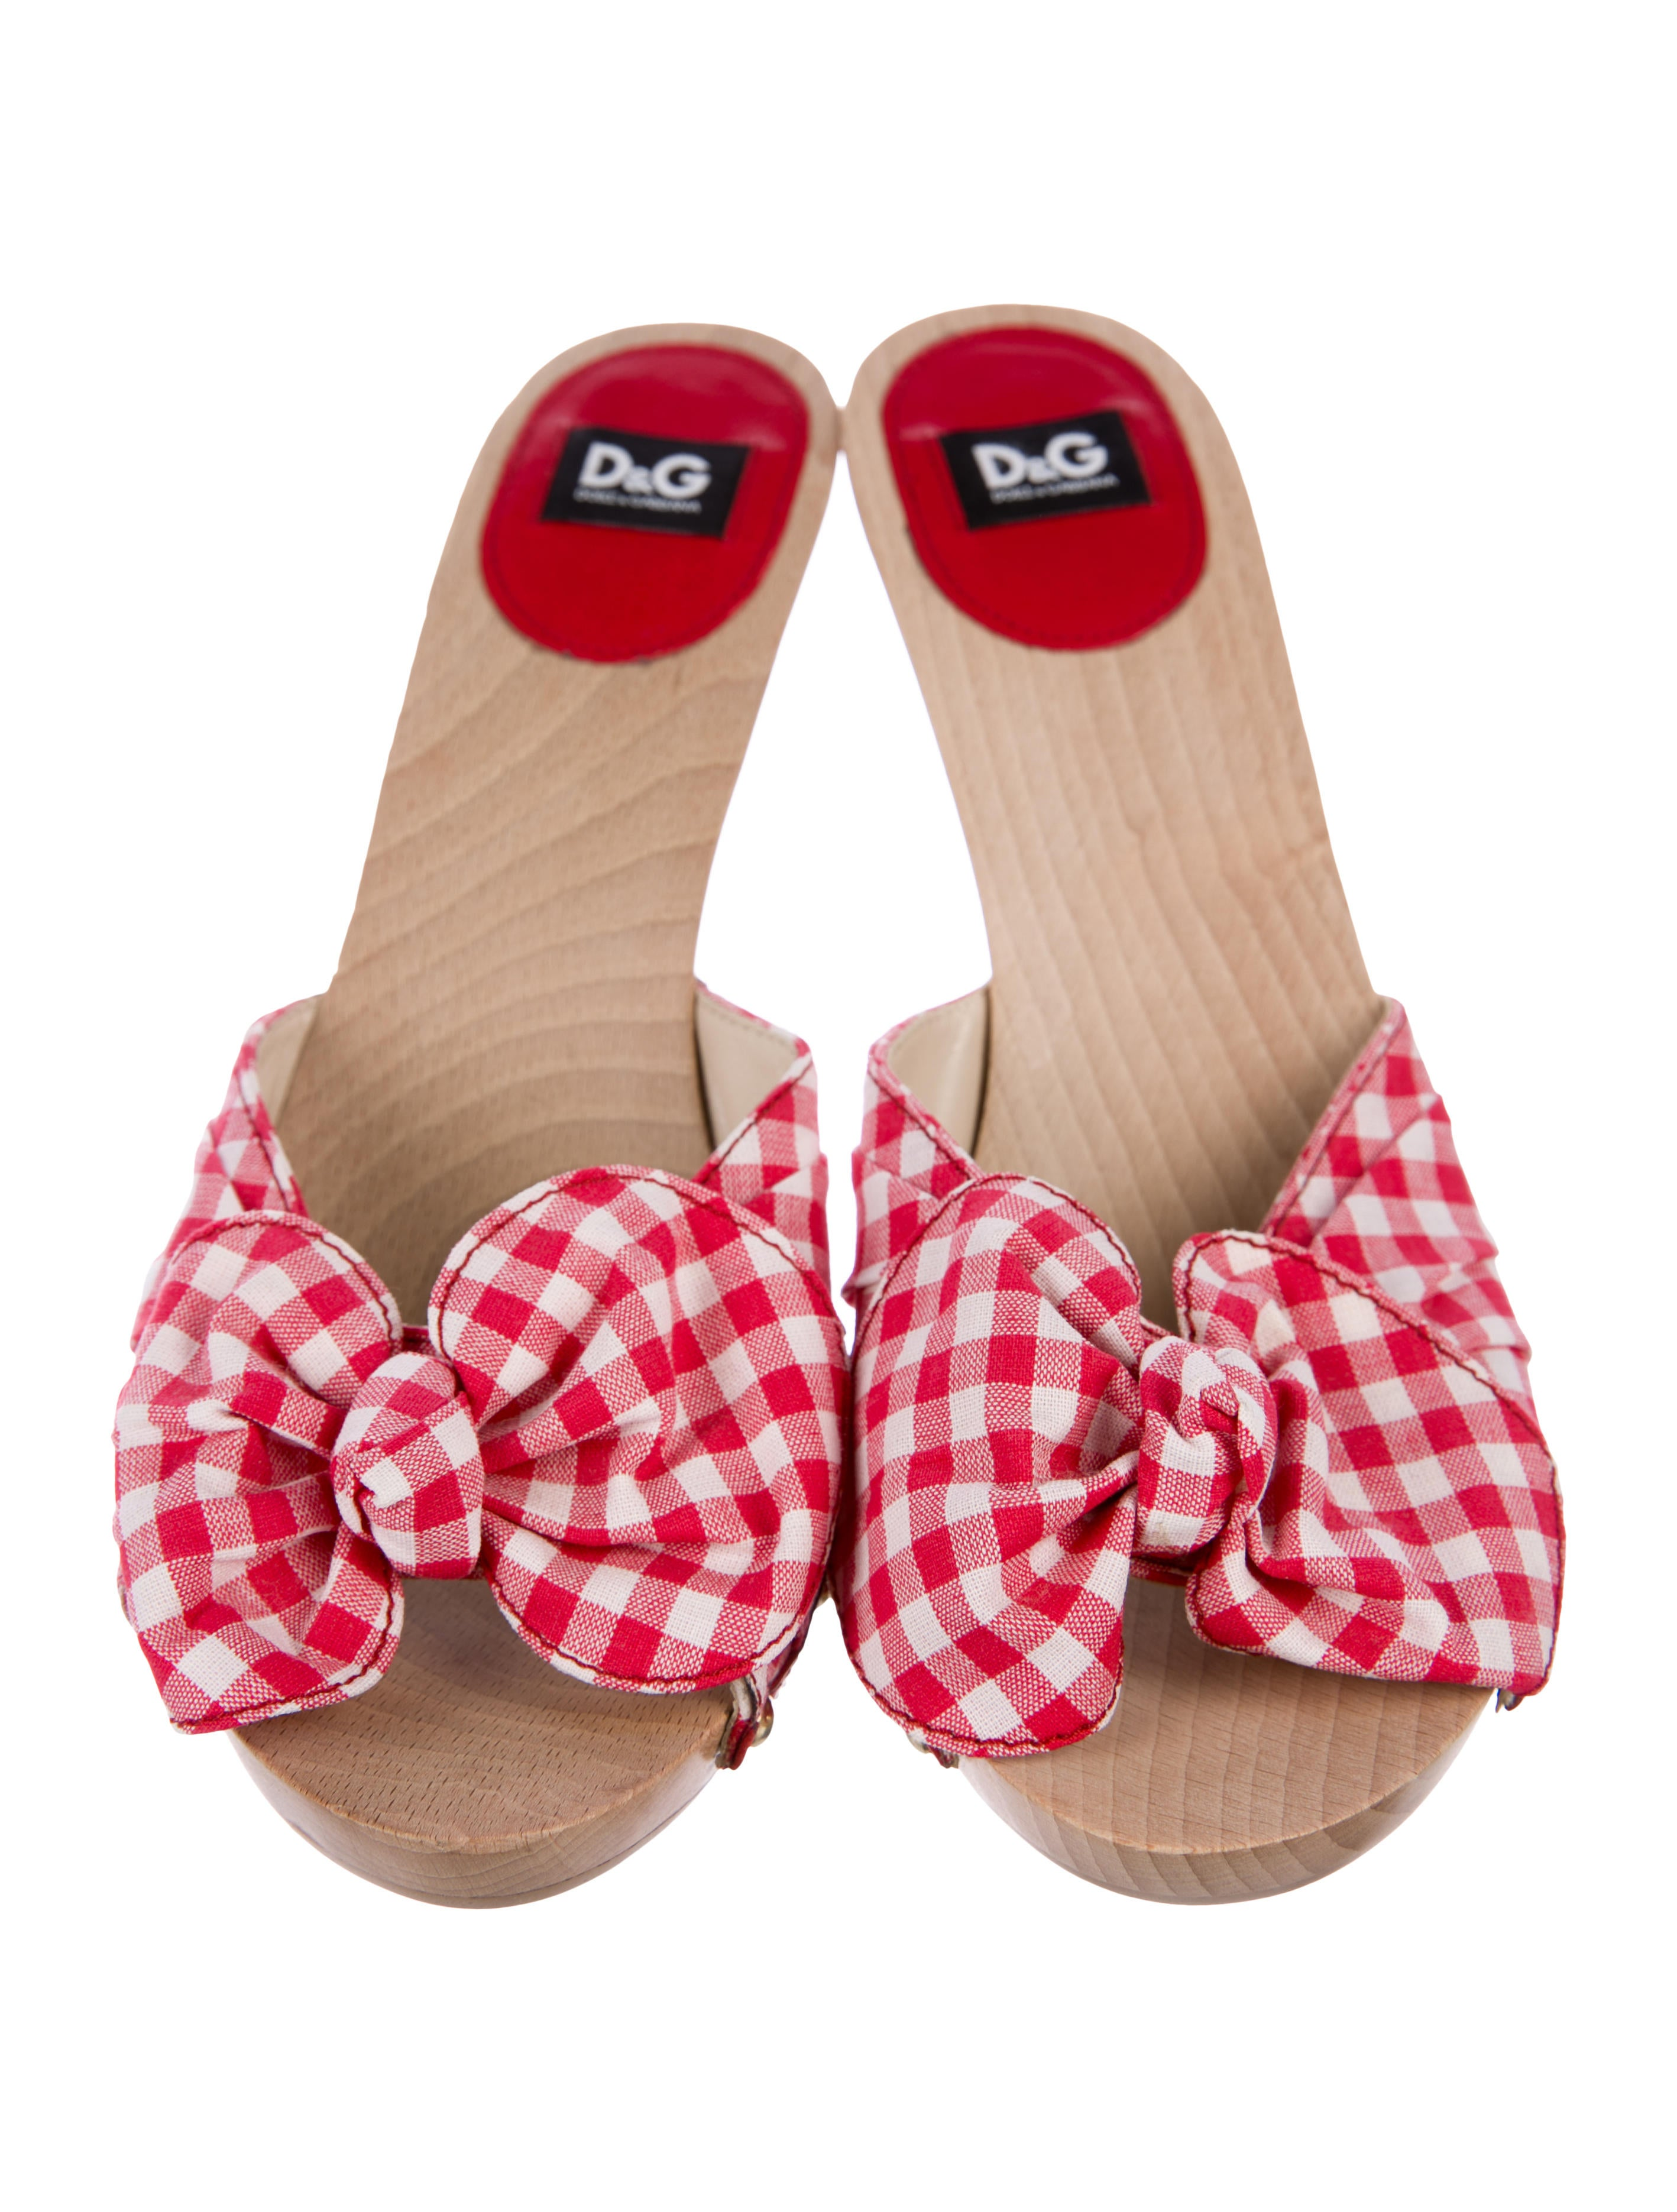 D&G Checkered Slide Sandals clearance websites buy cheap footaction for sale cheap online cheap price for sale kxzuh